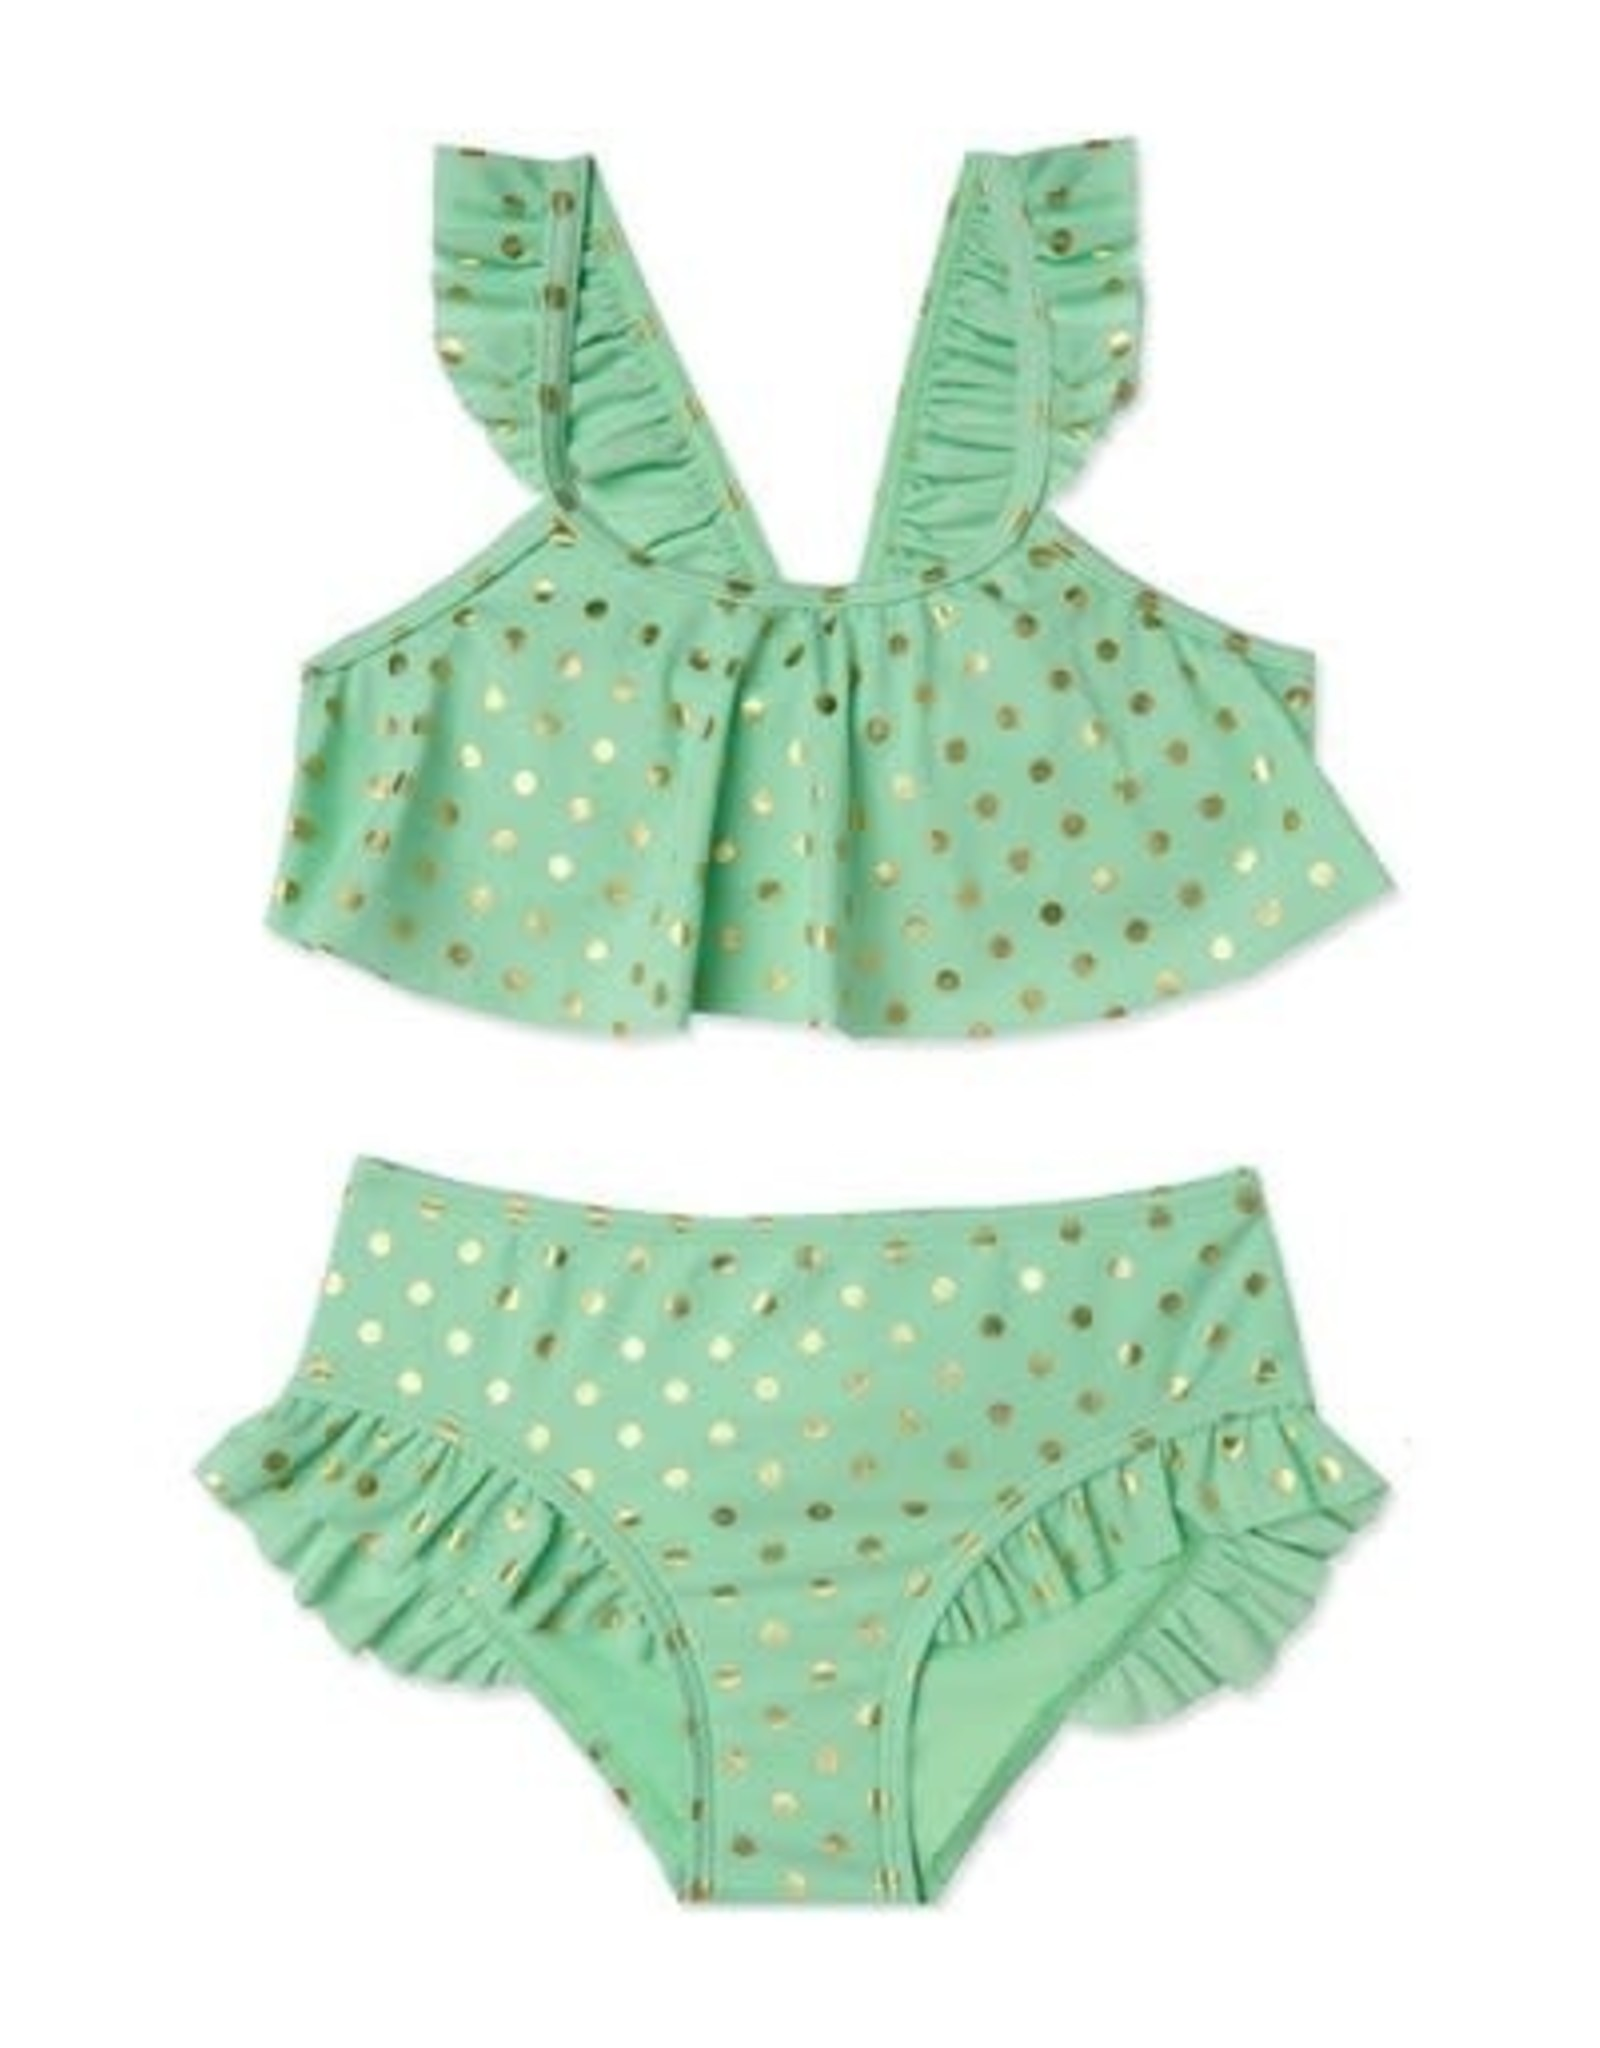 Malibu Design Group 2 Piece Mint/Gold Polka Dot 3T